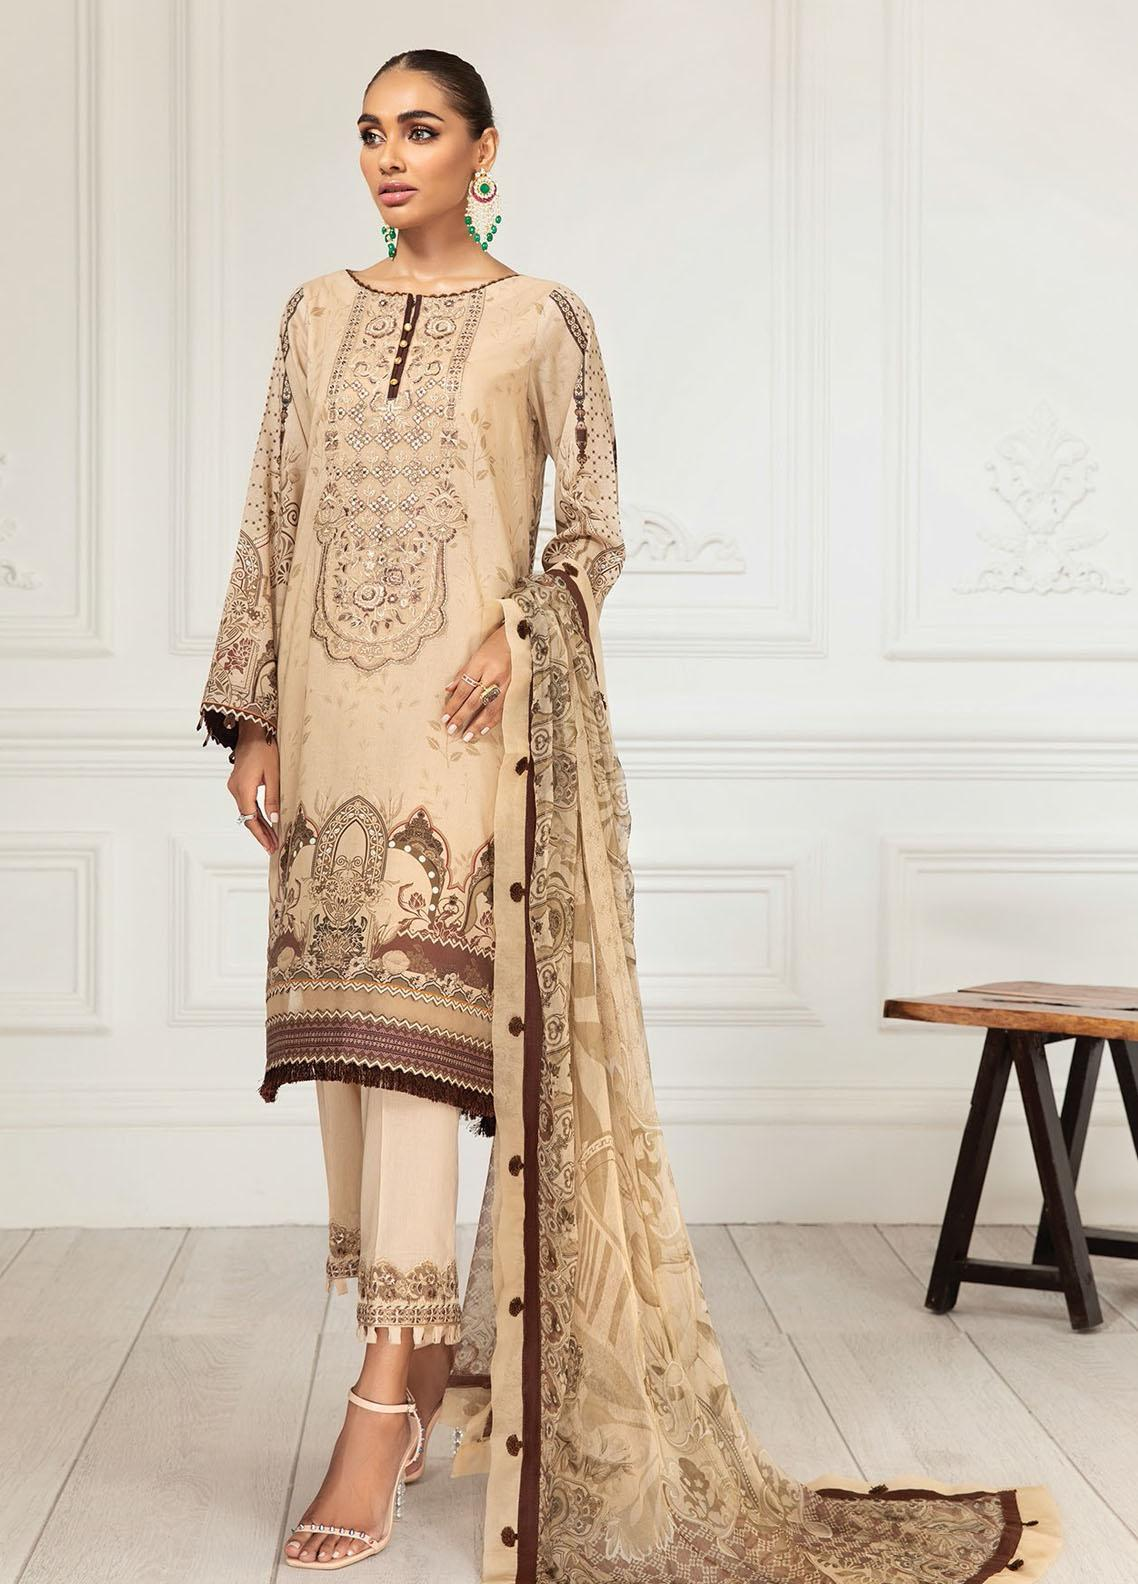 Farasha Embroidered Lawn Suits Unstitched 3 Piece FSH21-L3 12 Ivy Gold - Festive Collection